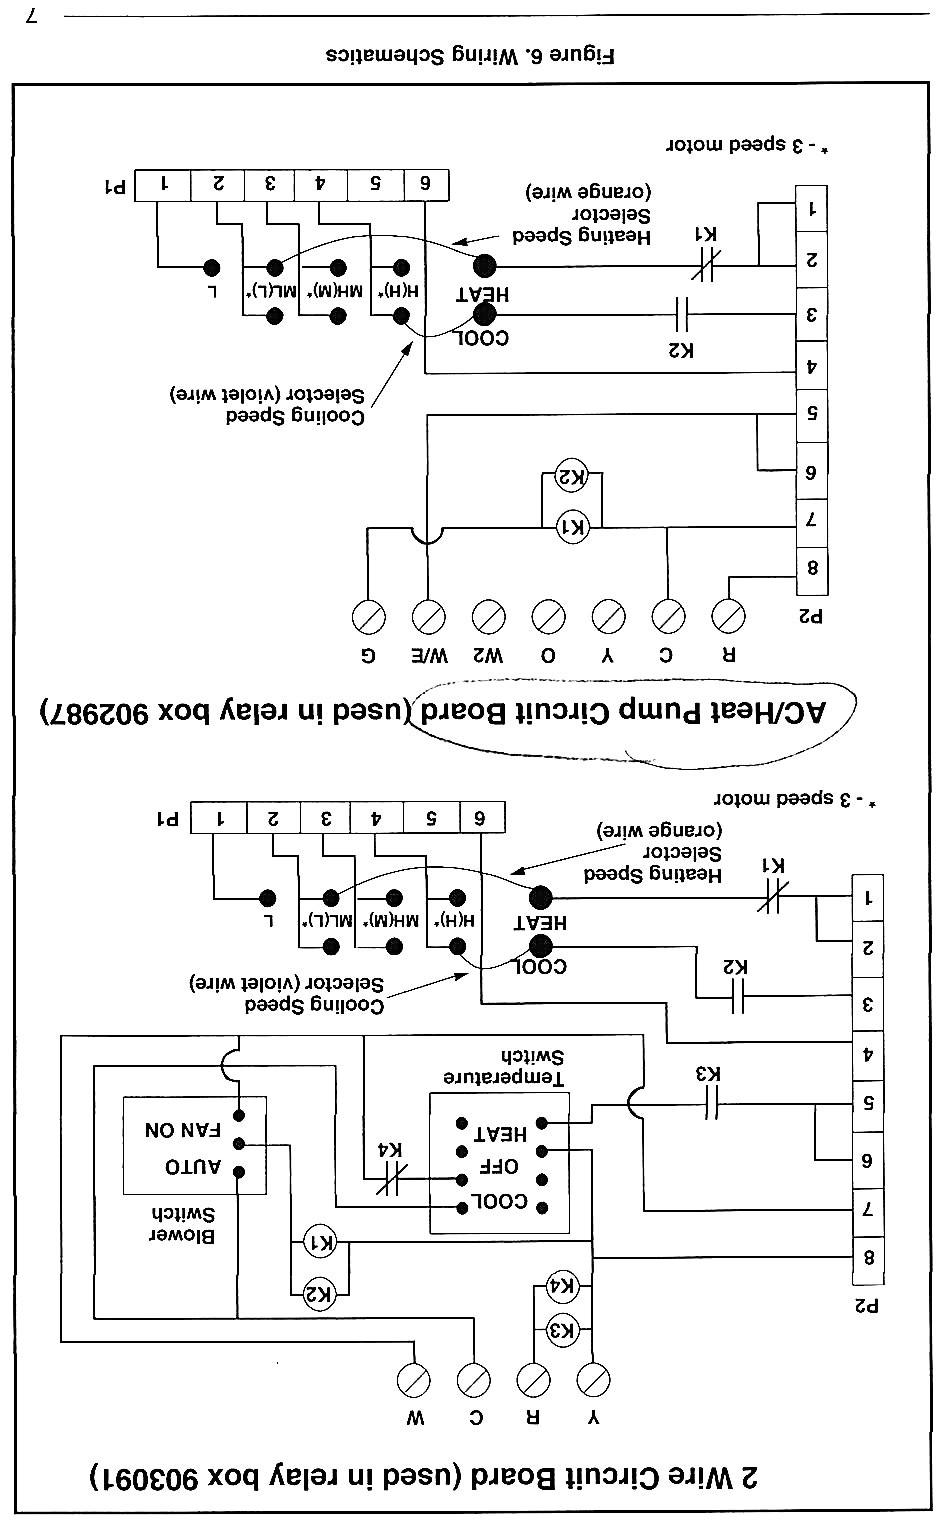 Intertherm Electric Furnace Wiring Diagram Wonderful Bright Nordyne Heat Pump Moved Permanently Fine To